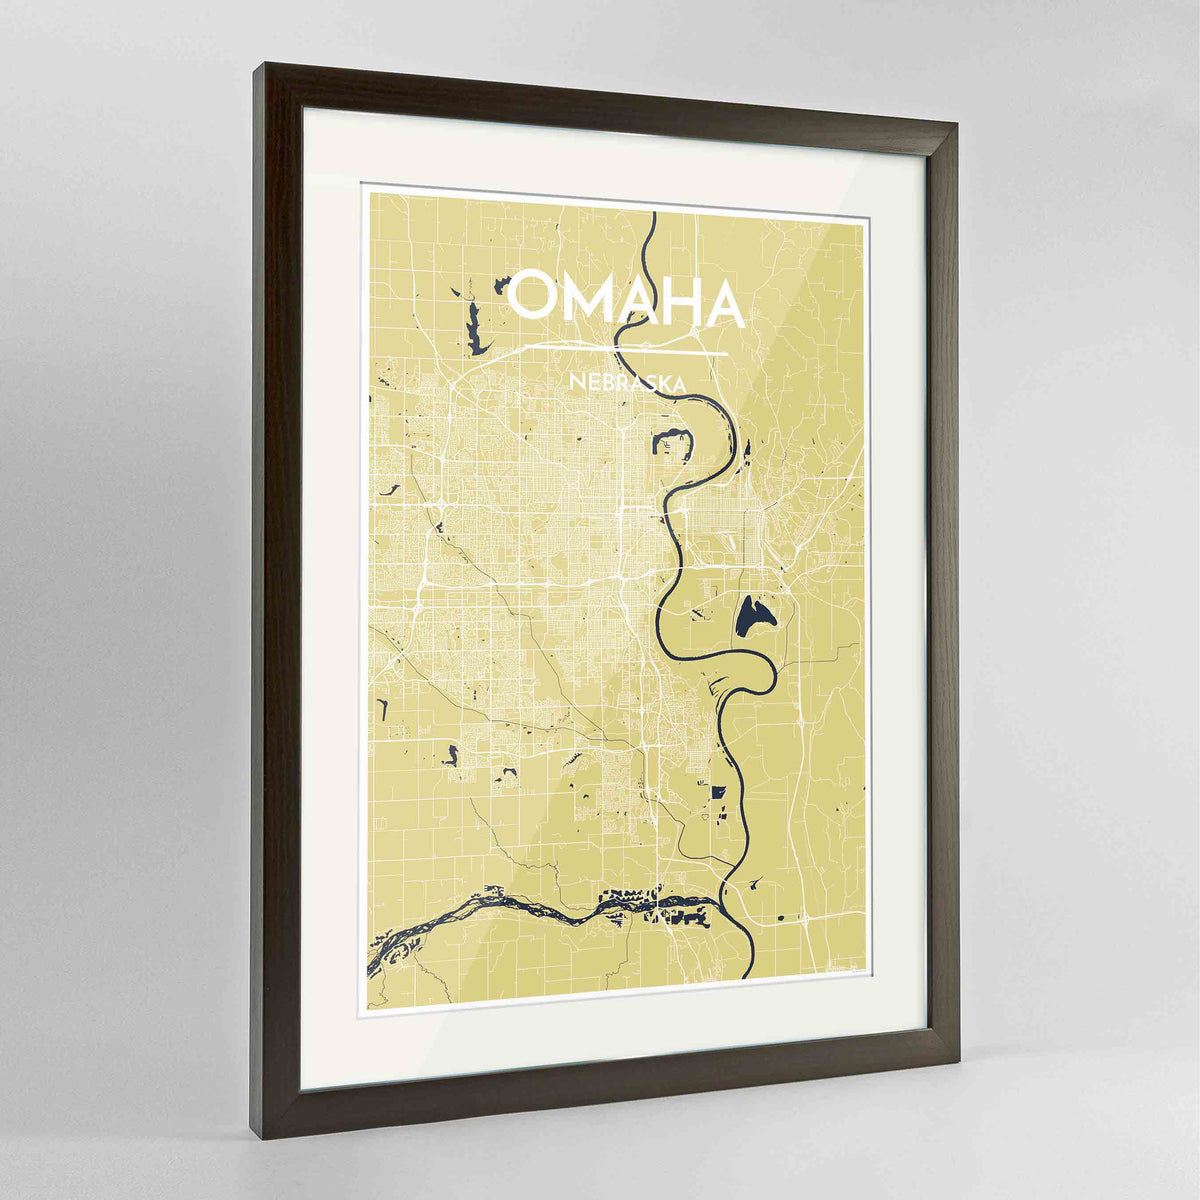 "Framed Omaha Map Art Print 24x36"" Contemporary Walnut frame Point Two Design Group"